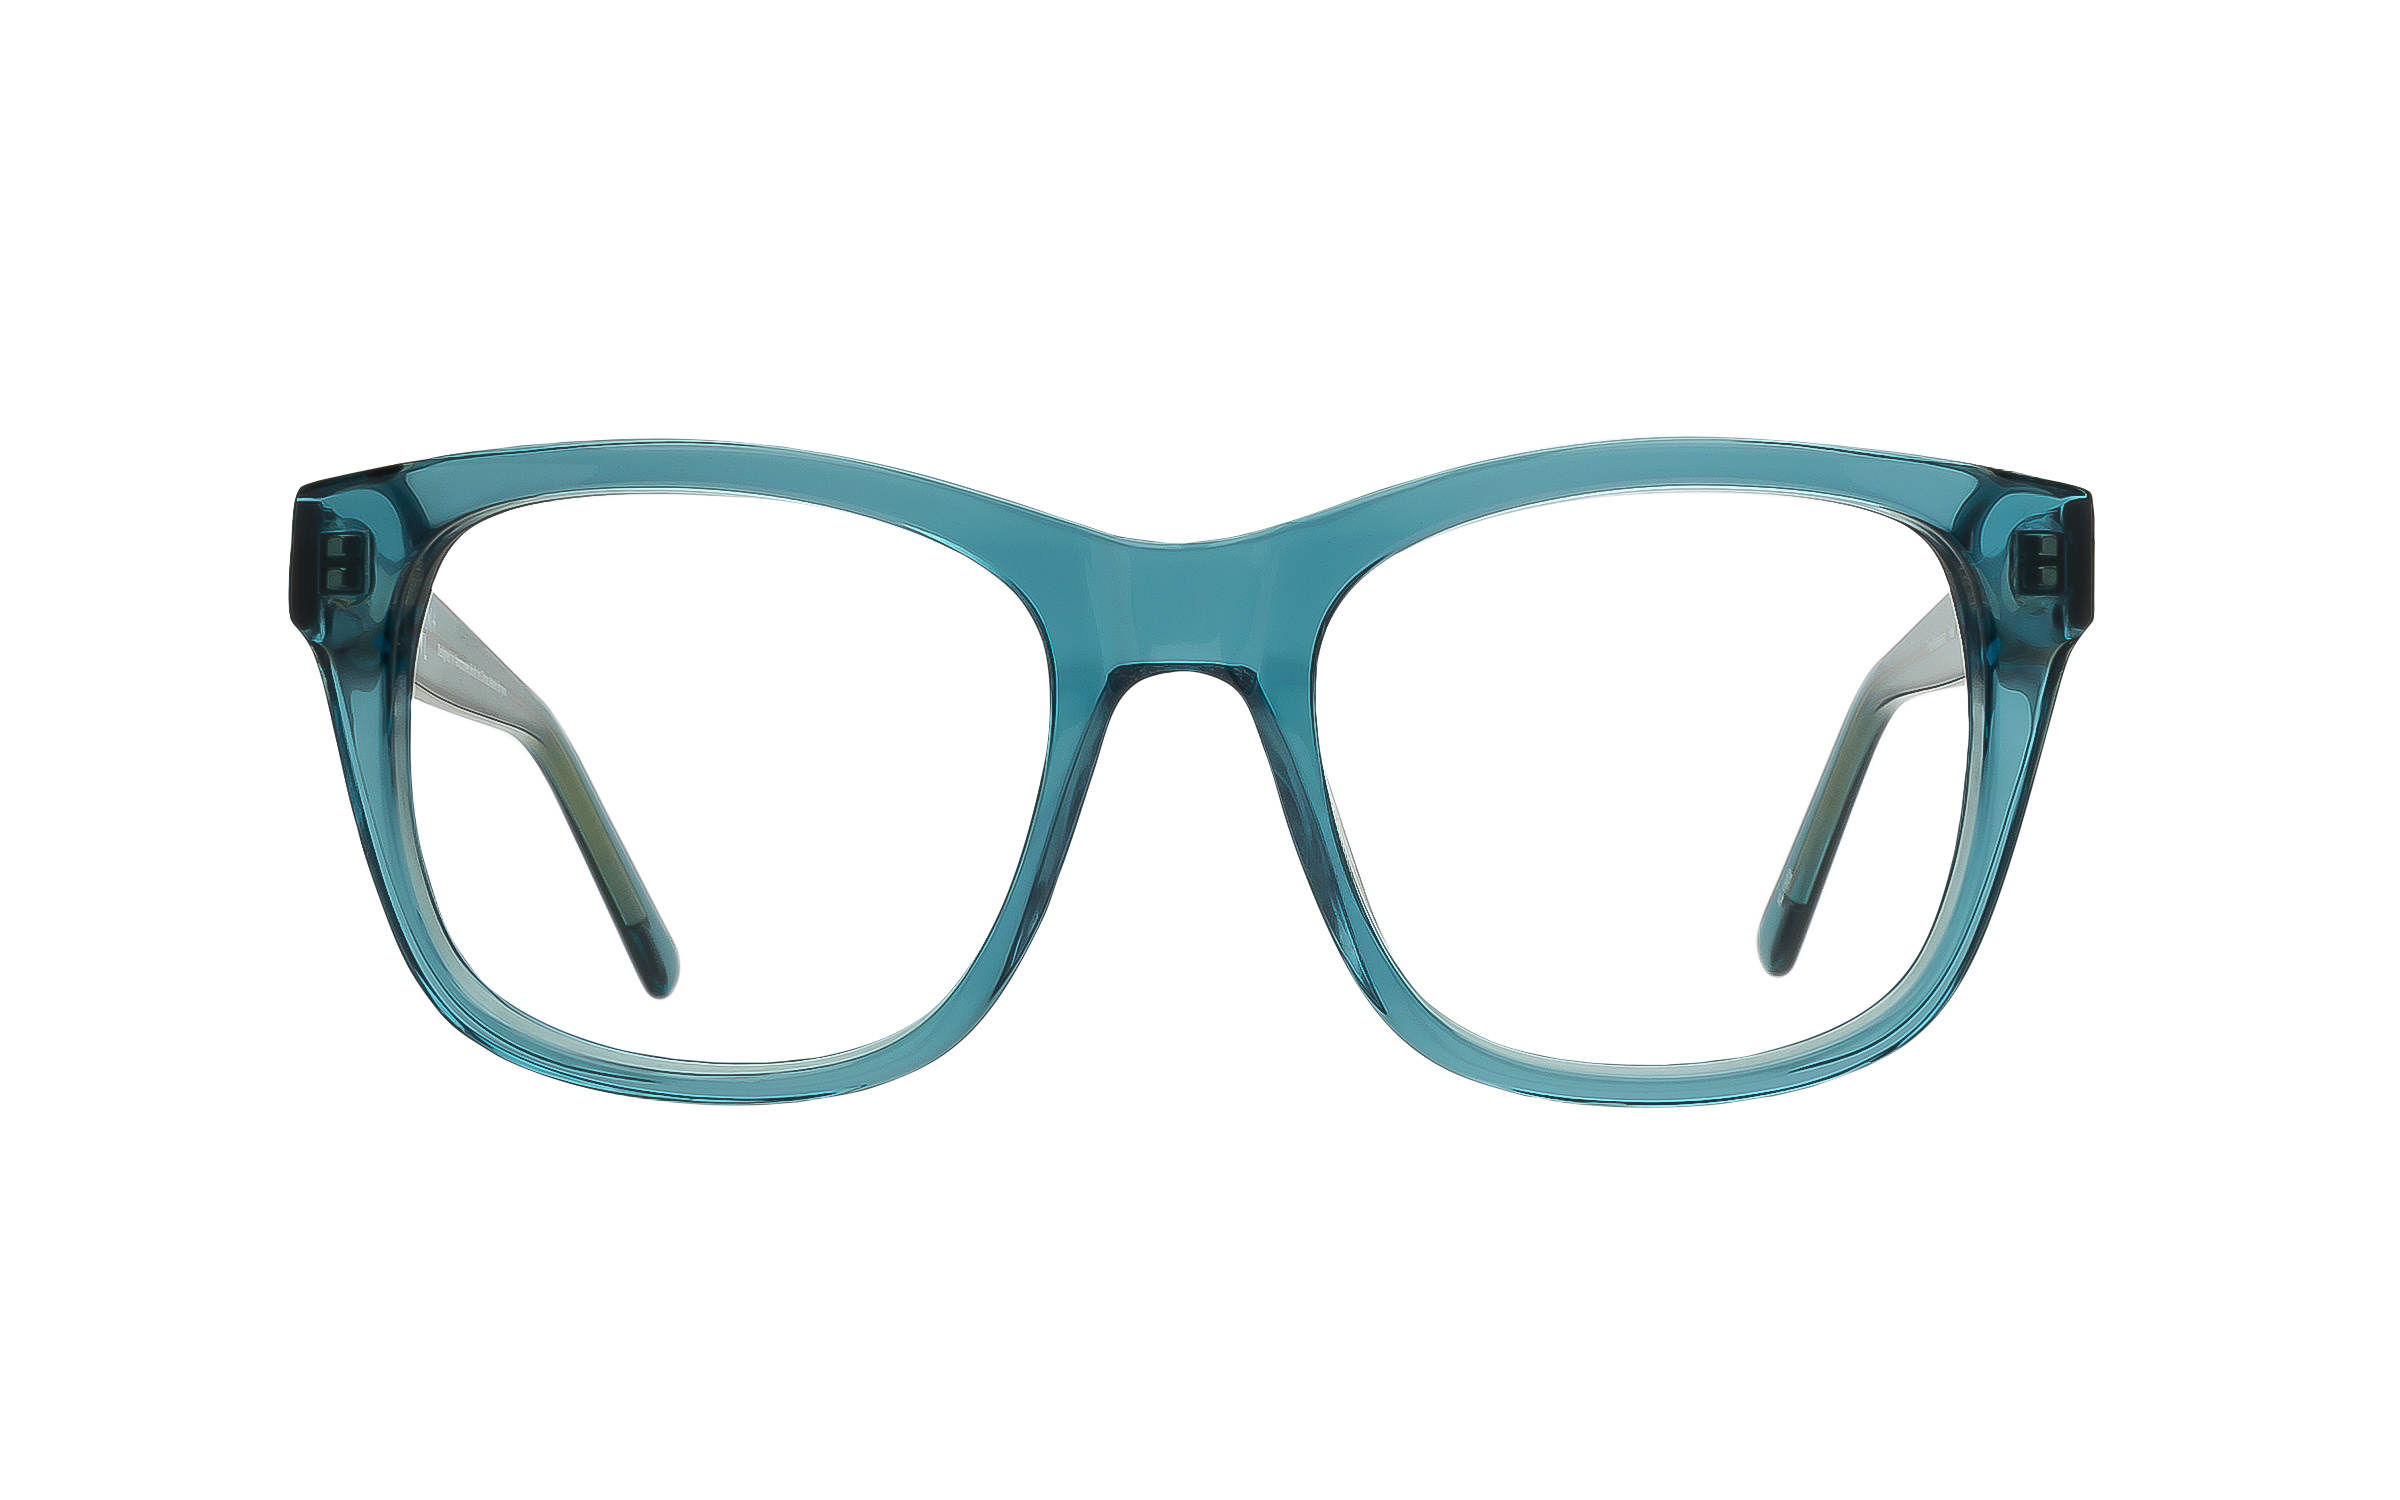 Teal eyeglass frames | Eyeglasses | Compare Prices at Nextag